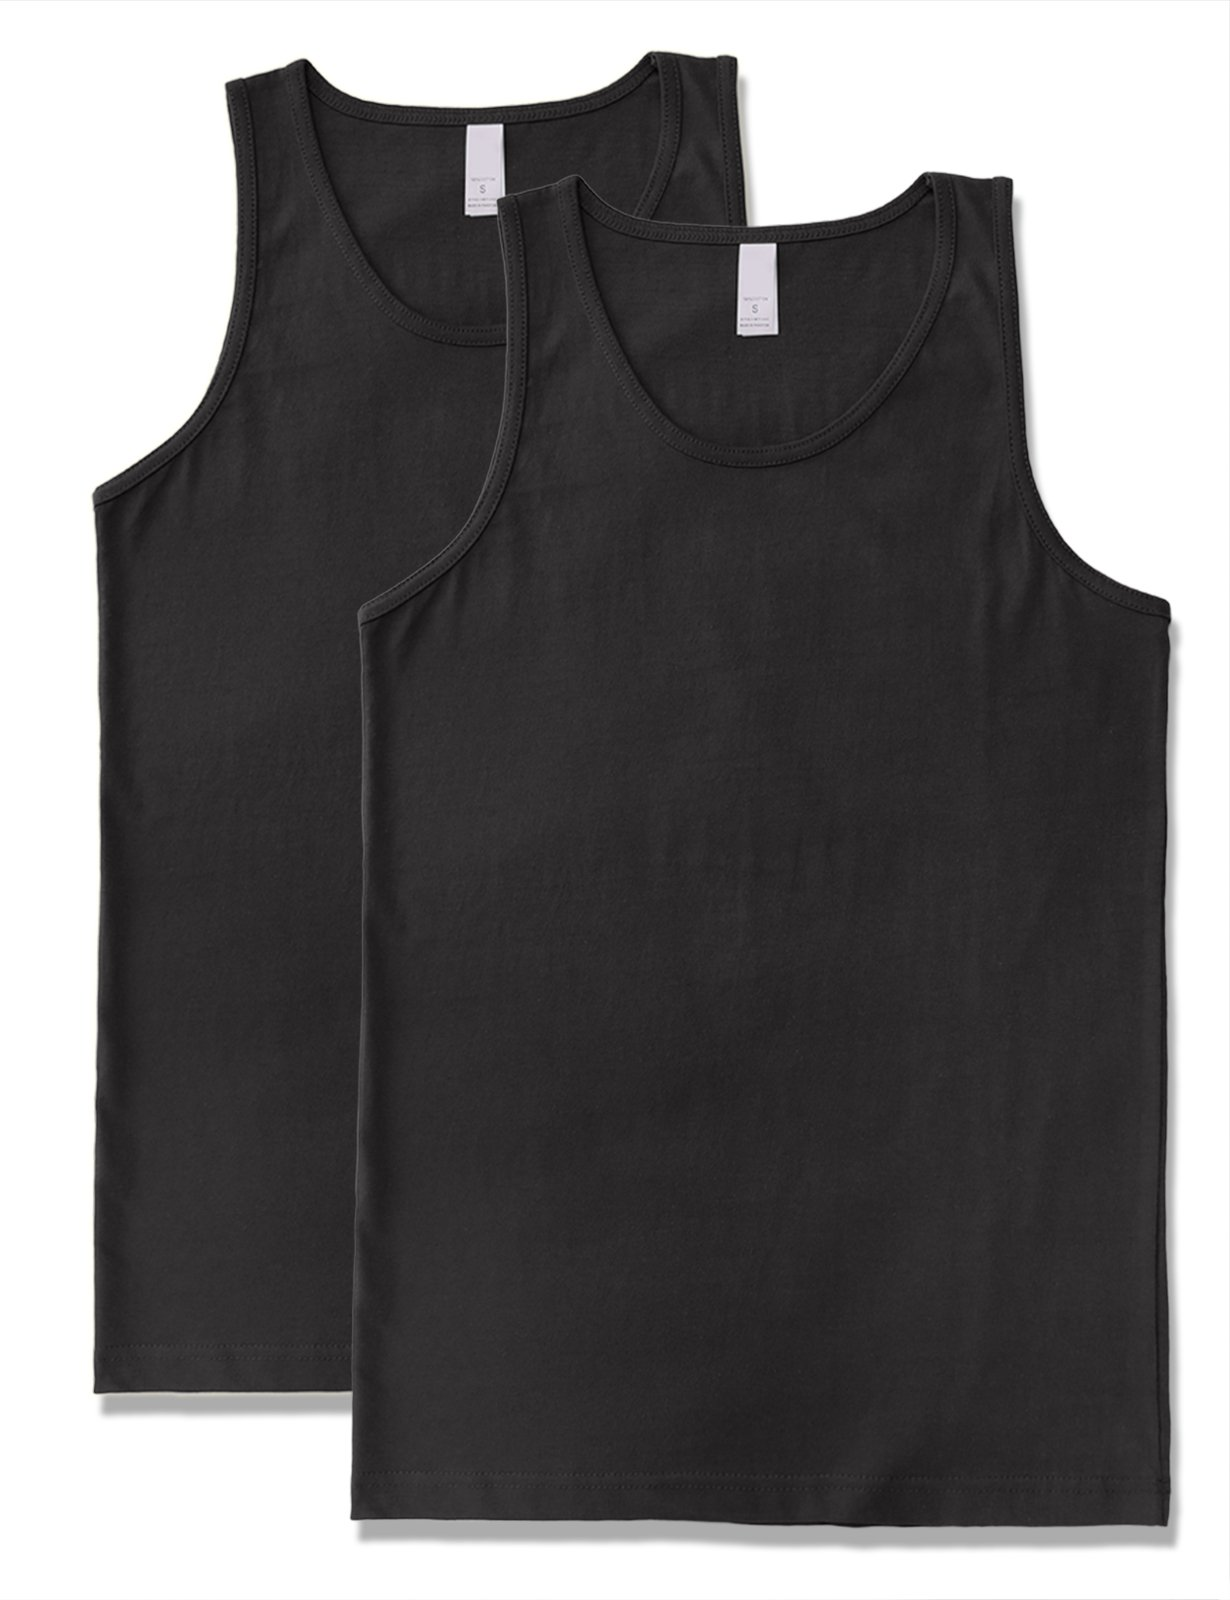 Men's Premium Basic Solid Tank Top Jersey Casual Shirts 2XL Black X 2